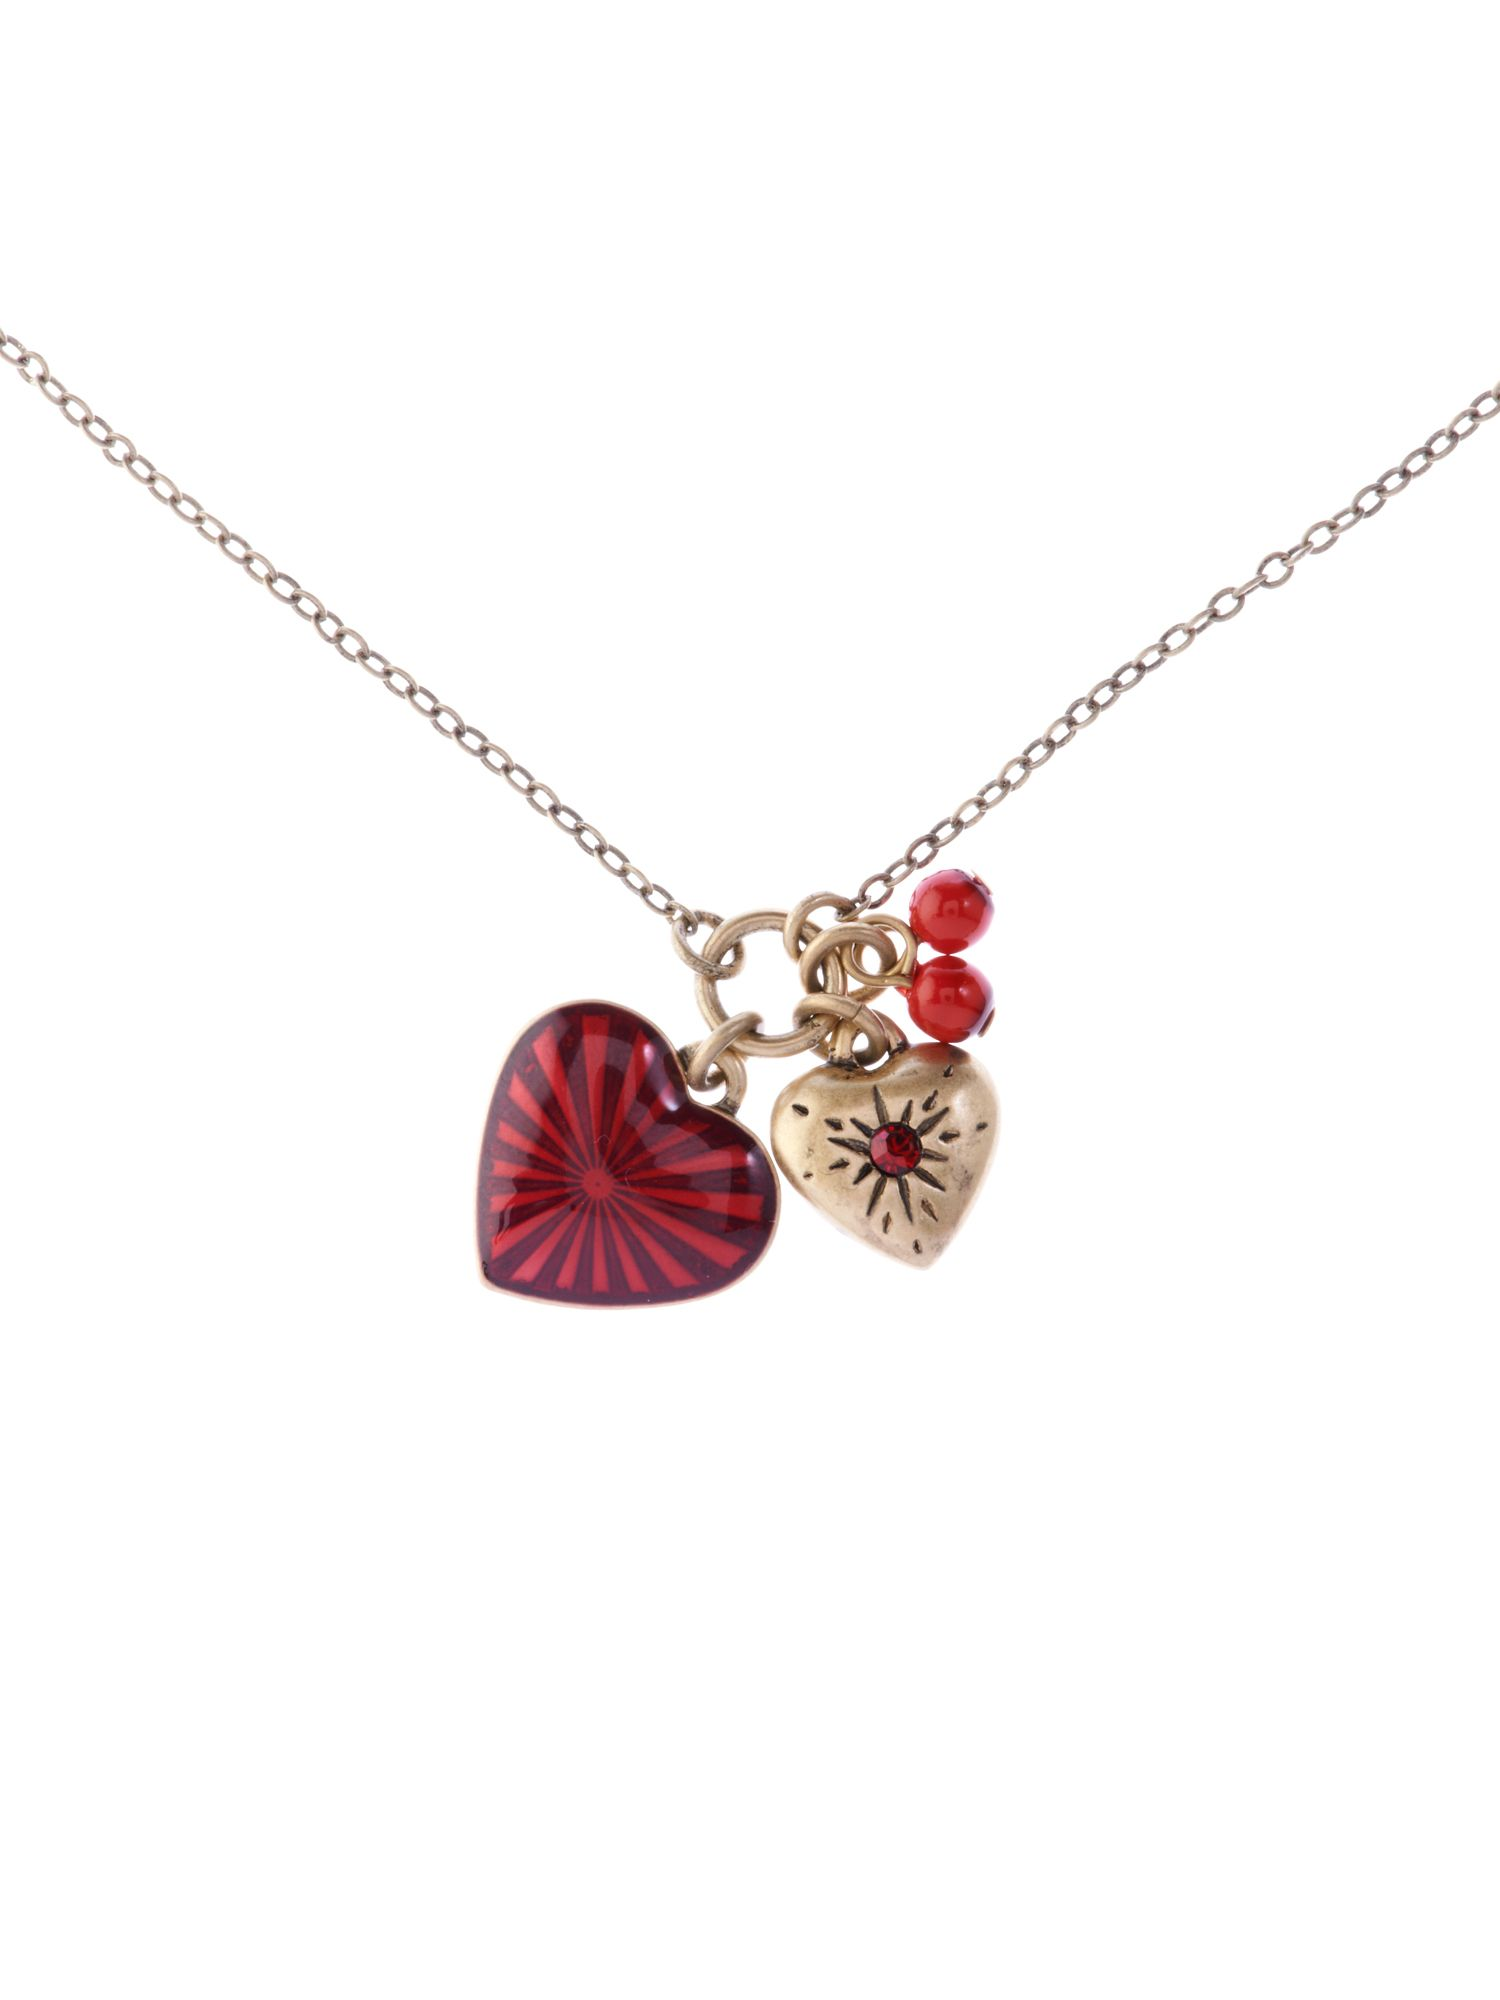 Cath Kidston Cath Kidson Heart charm necklace